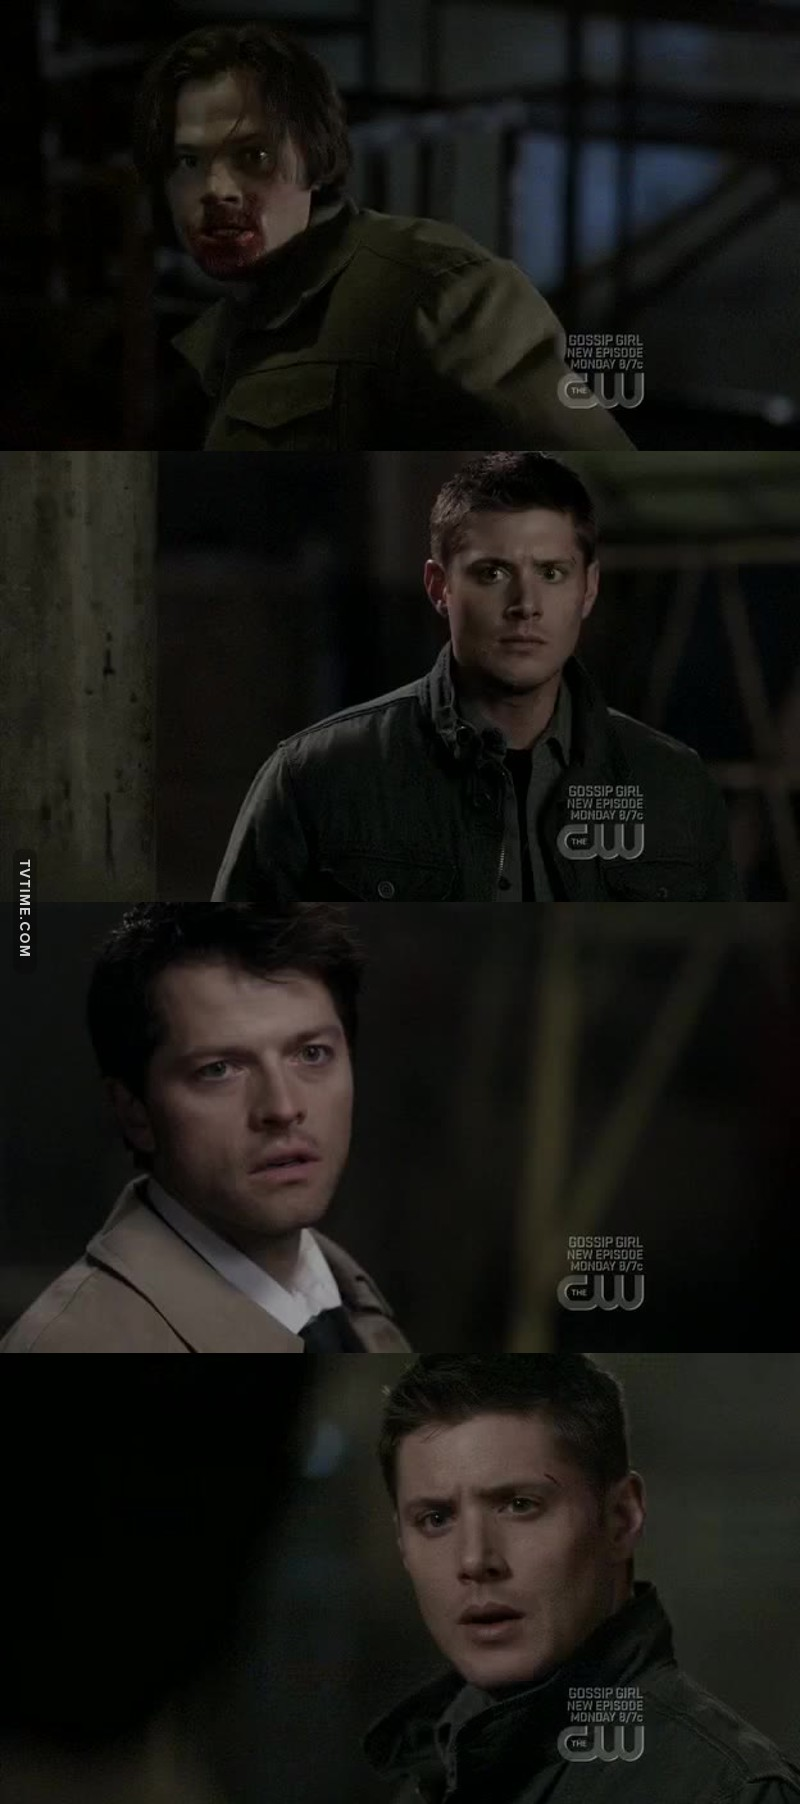 I don't know what's more heartbreaking for Dean, Seeing Sam drinking demon blood or Castiel talking to him that way 😢